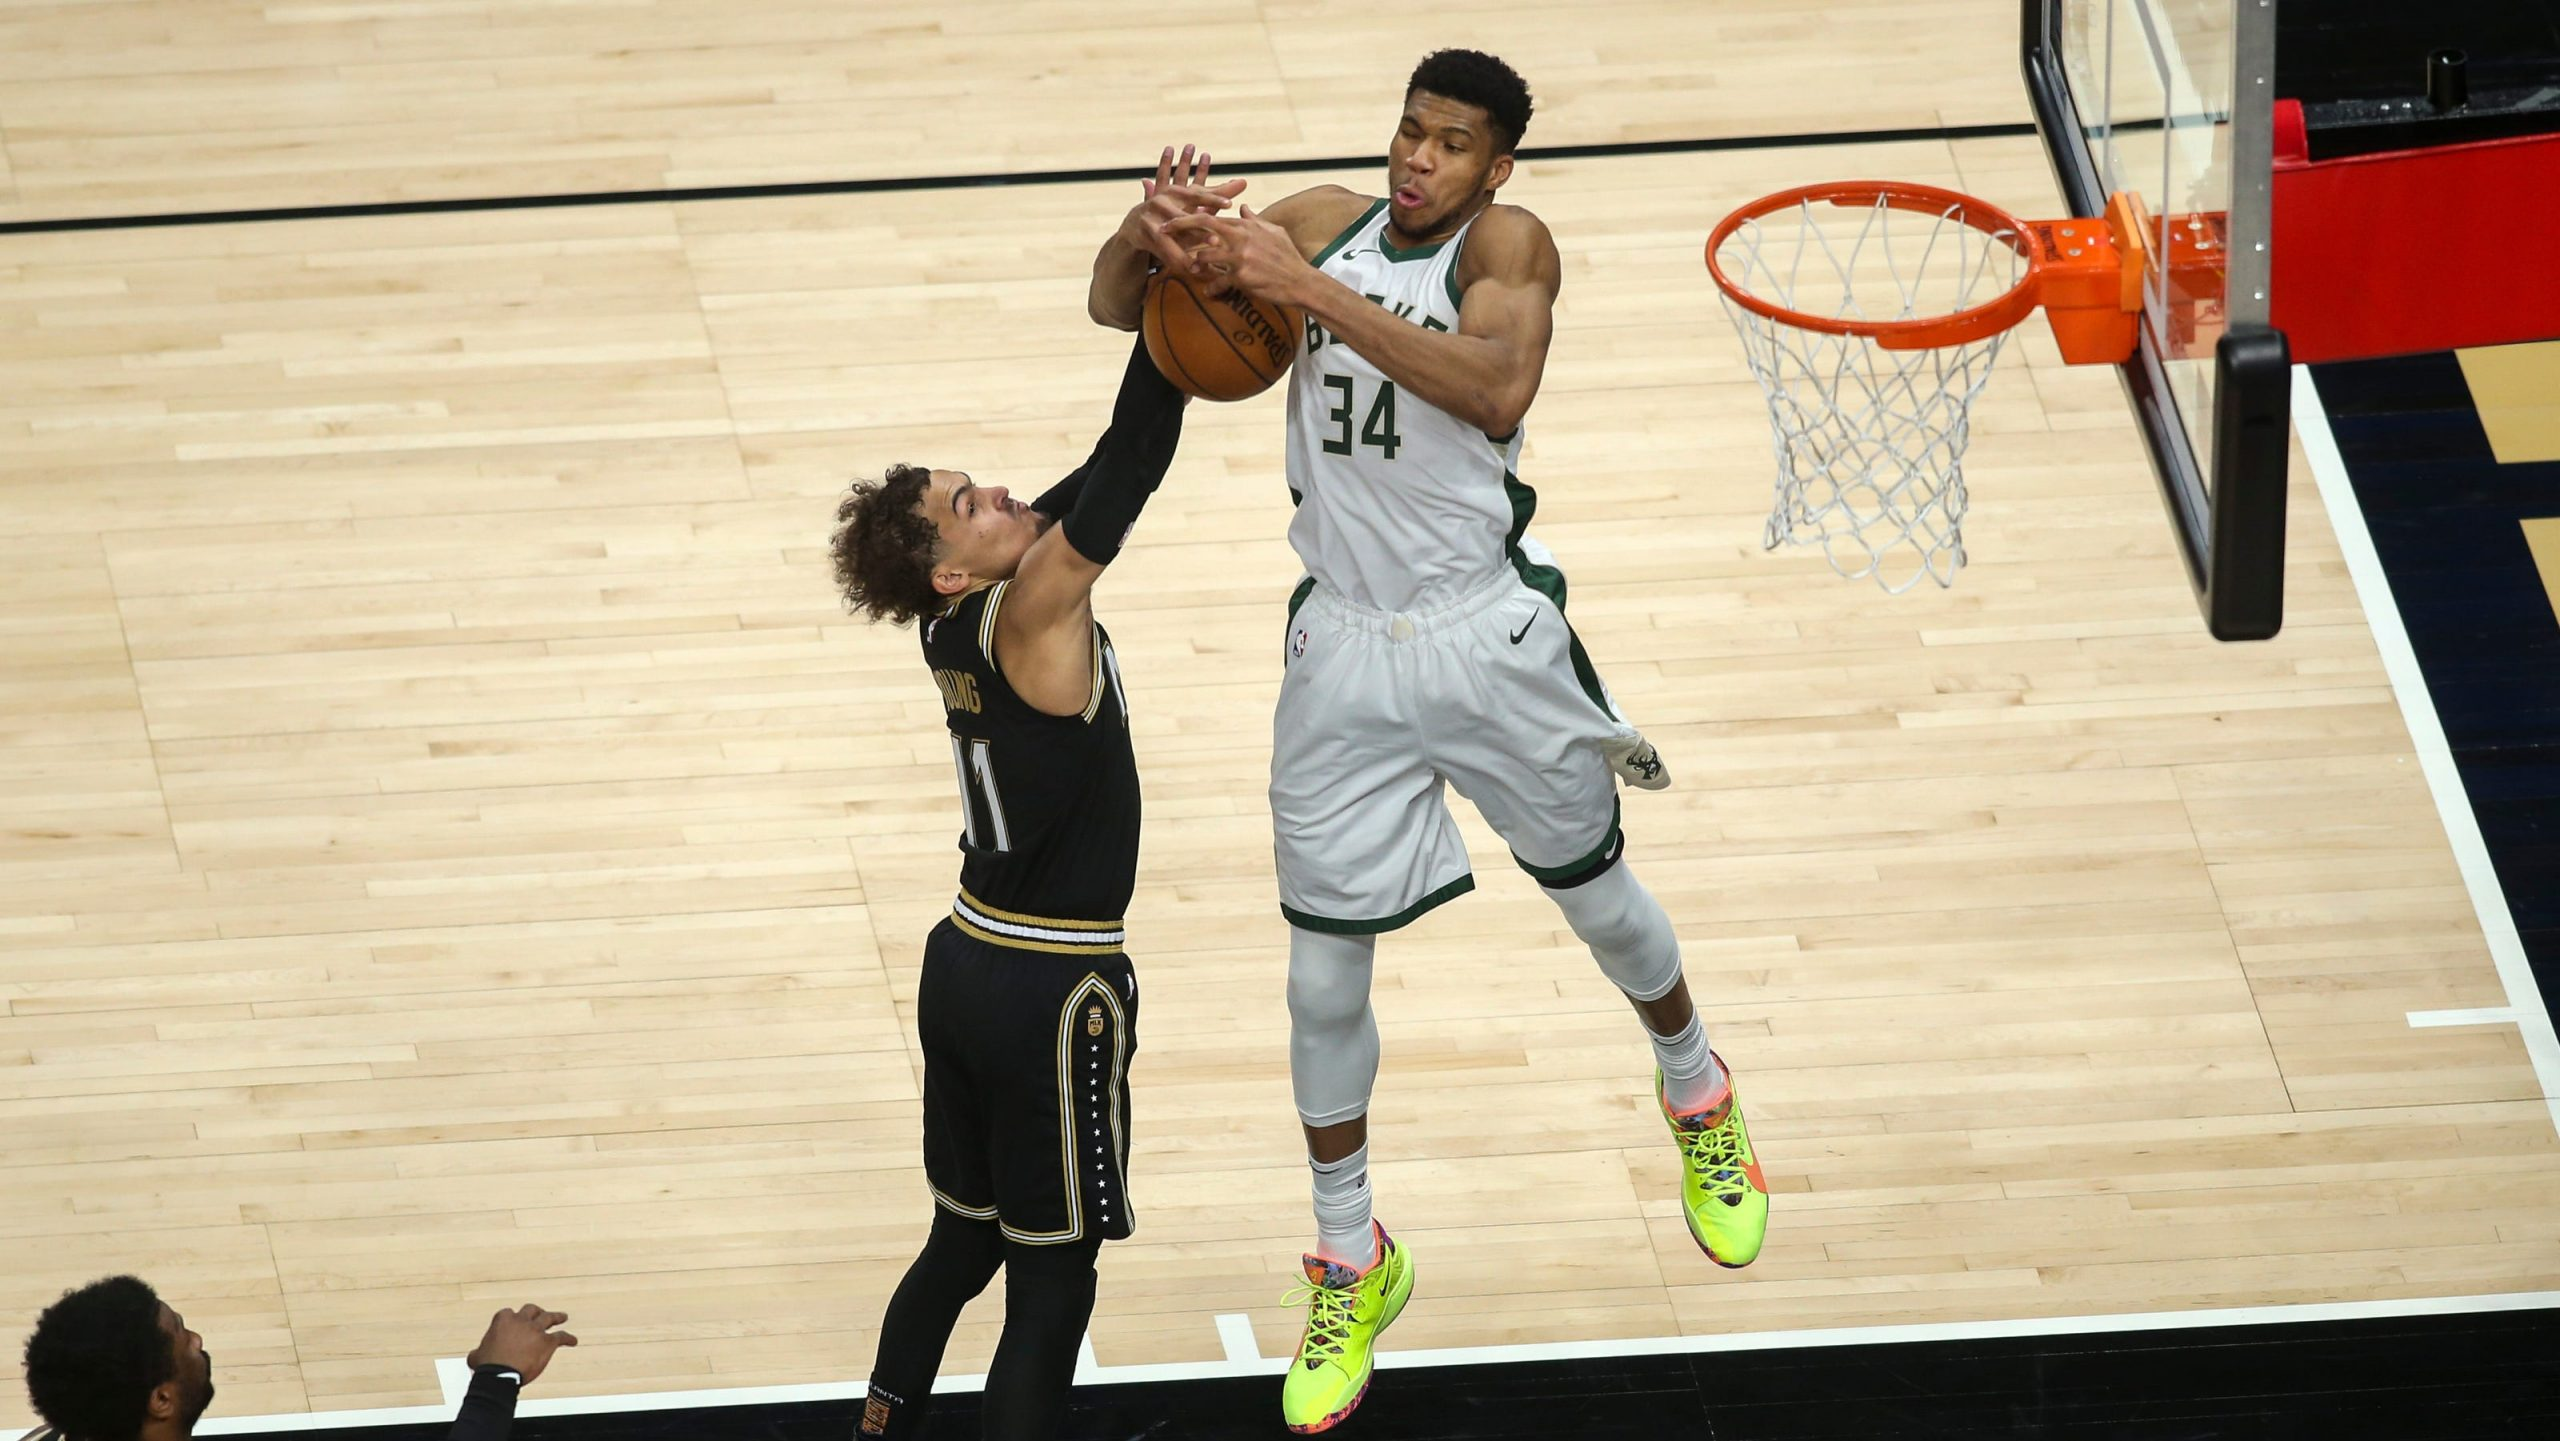 Do These Playoffs Cement Giannis As A Superstar And Dispel The Narrative About His Playoffs Struggles?